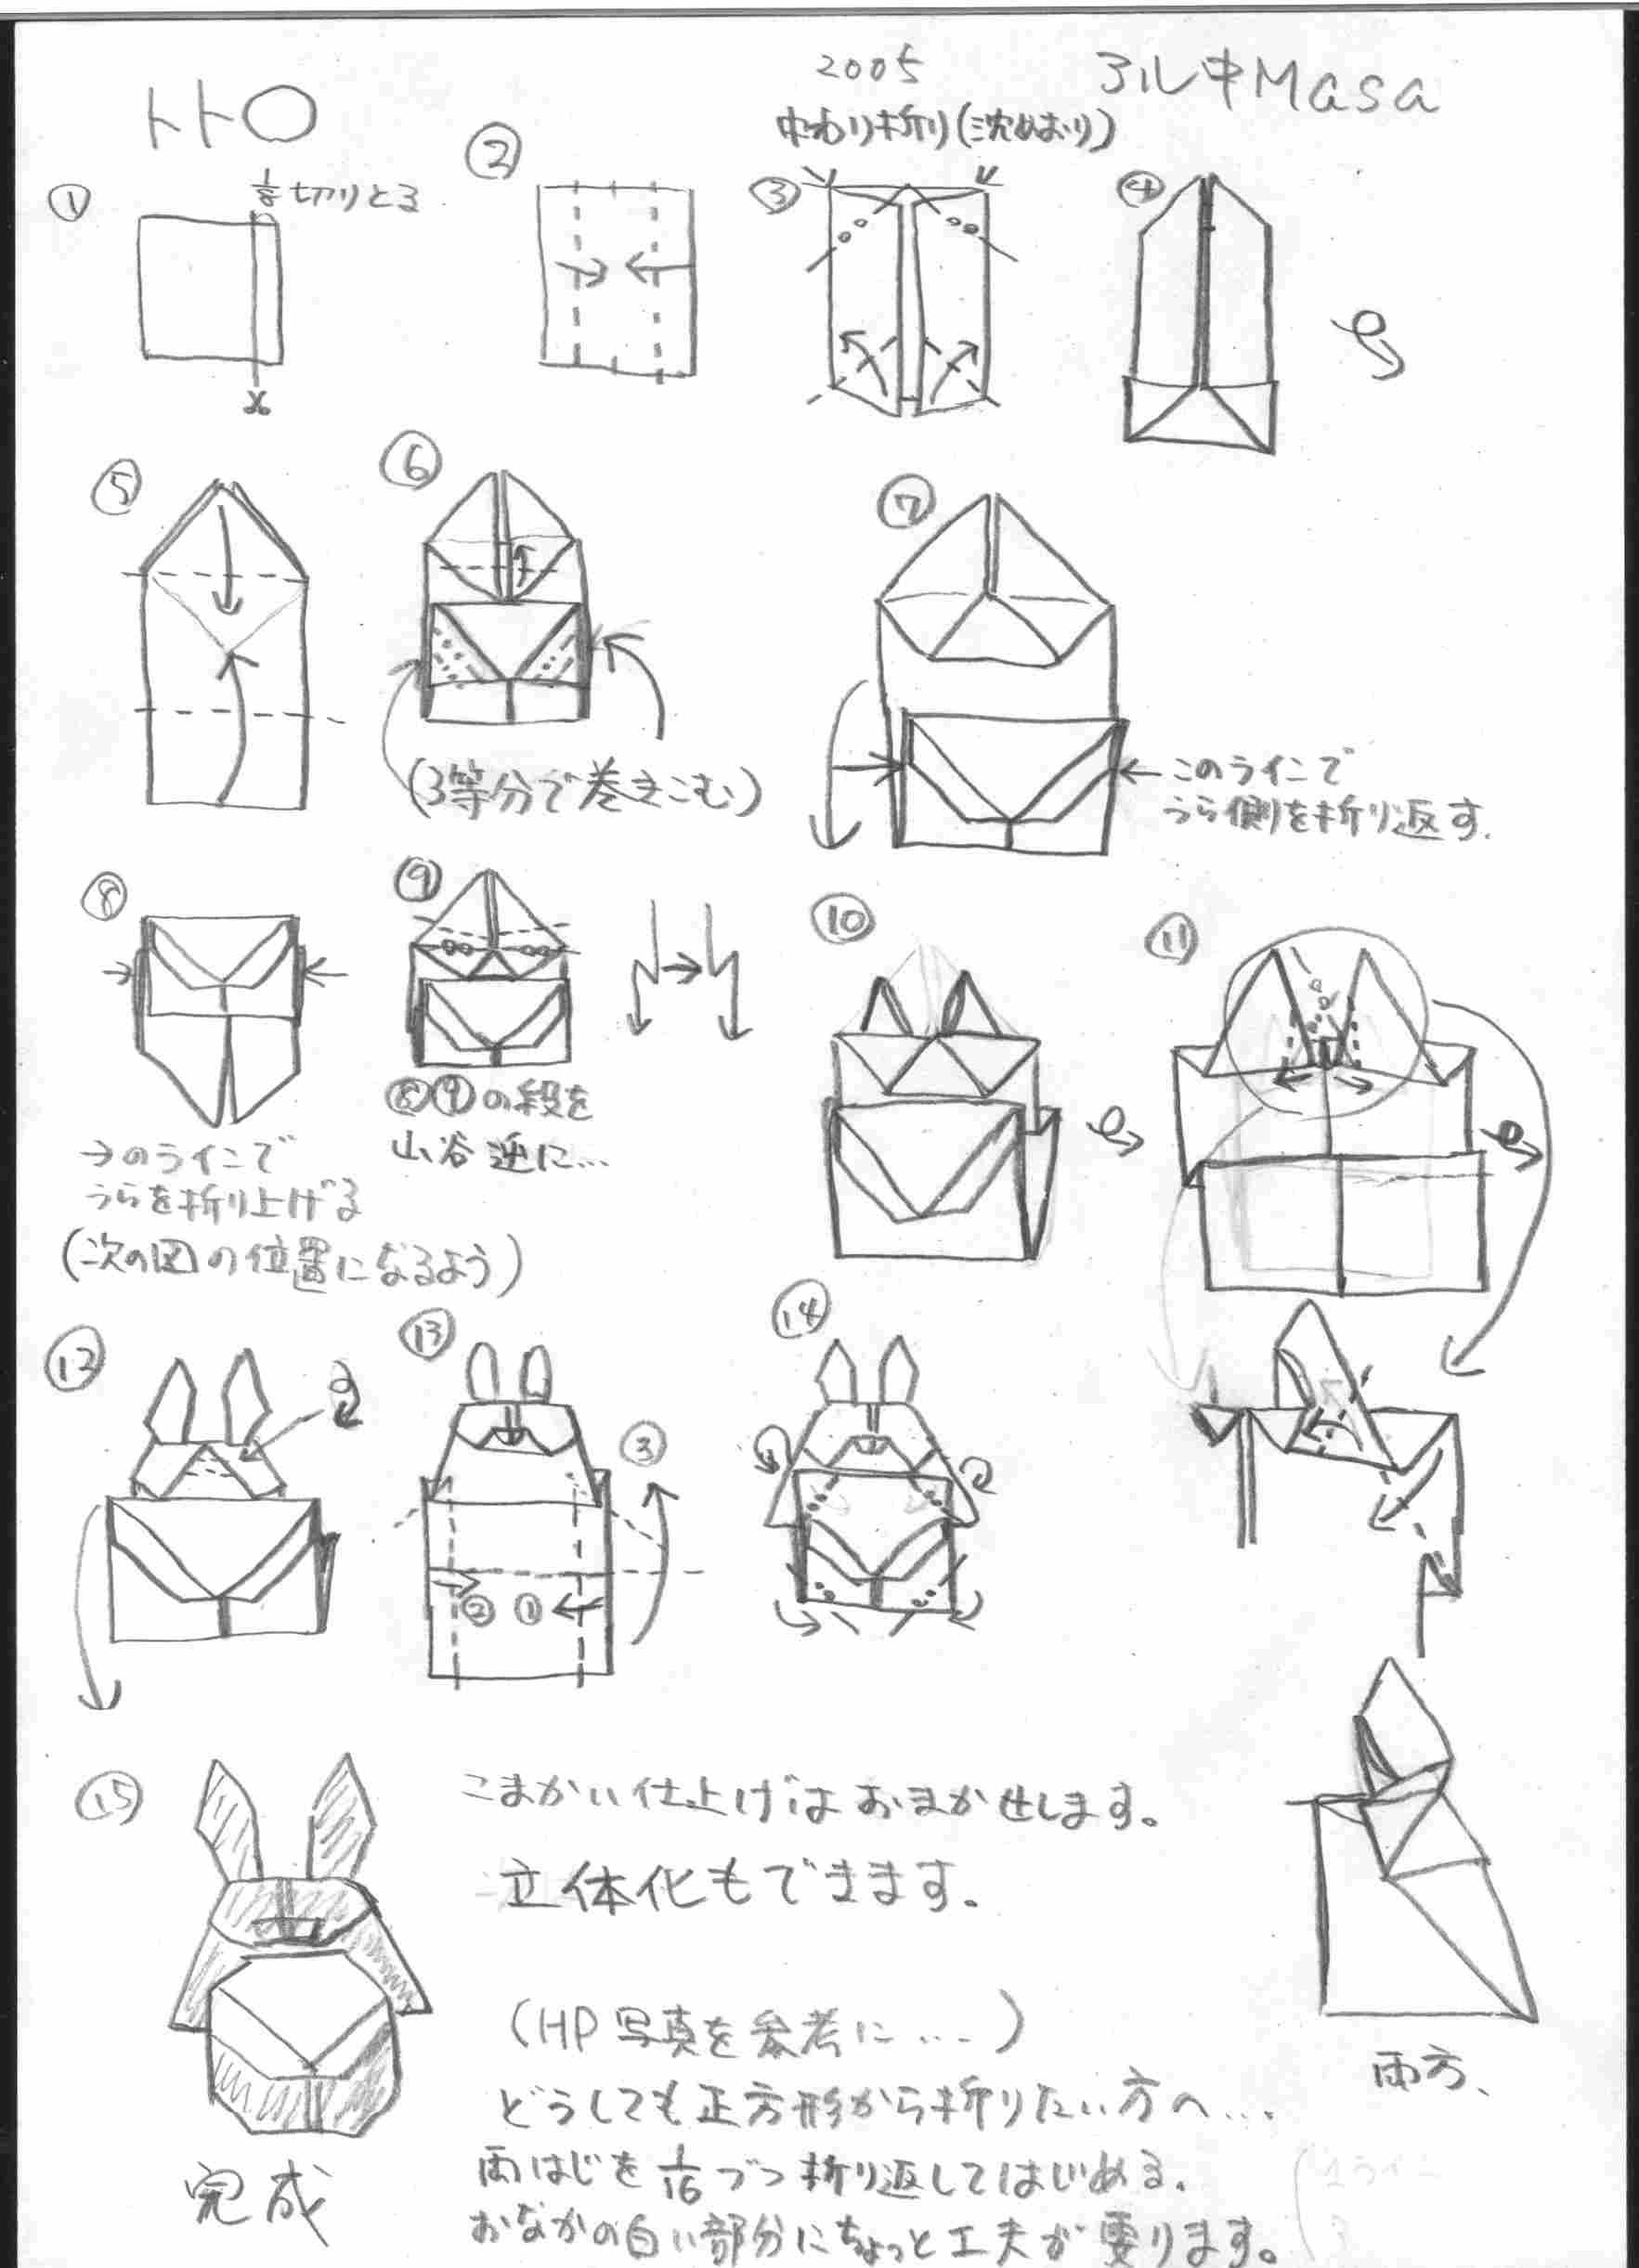 Origamiweapondiagrams Origami Weapons Preview Wiring Diagram Carorigami Car Diagramcar Origamiorigami Diagramsmoney Totoro Miyazaki Instructions Easy Rh Pinterest Com